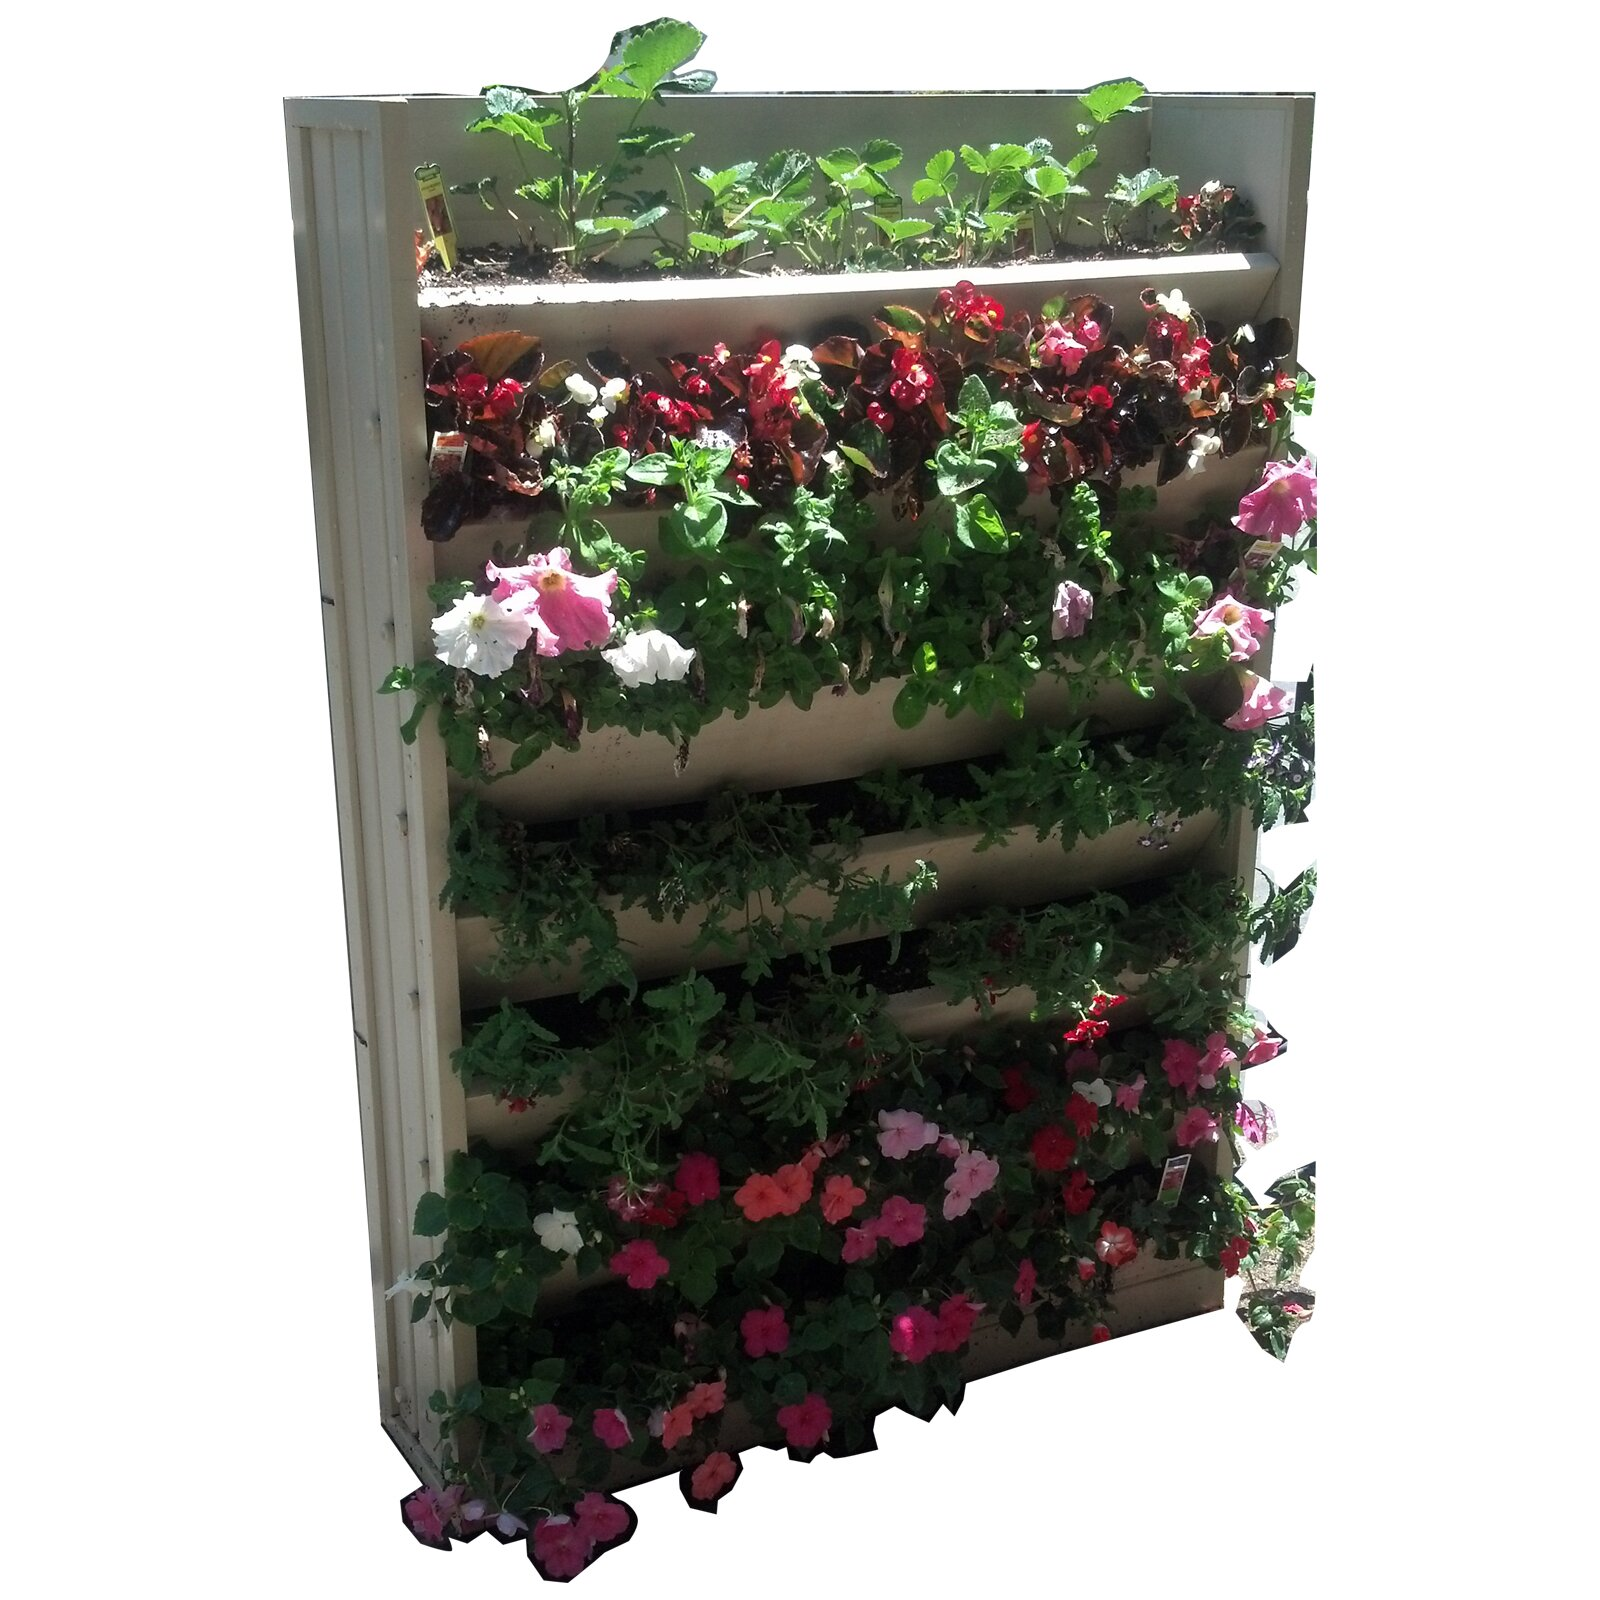 New age garden ecoflex wall mounted planter reviews - Wall mounted planters outdoor ...